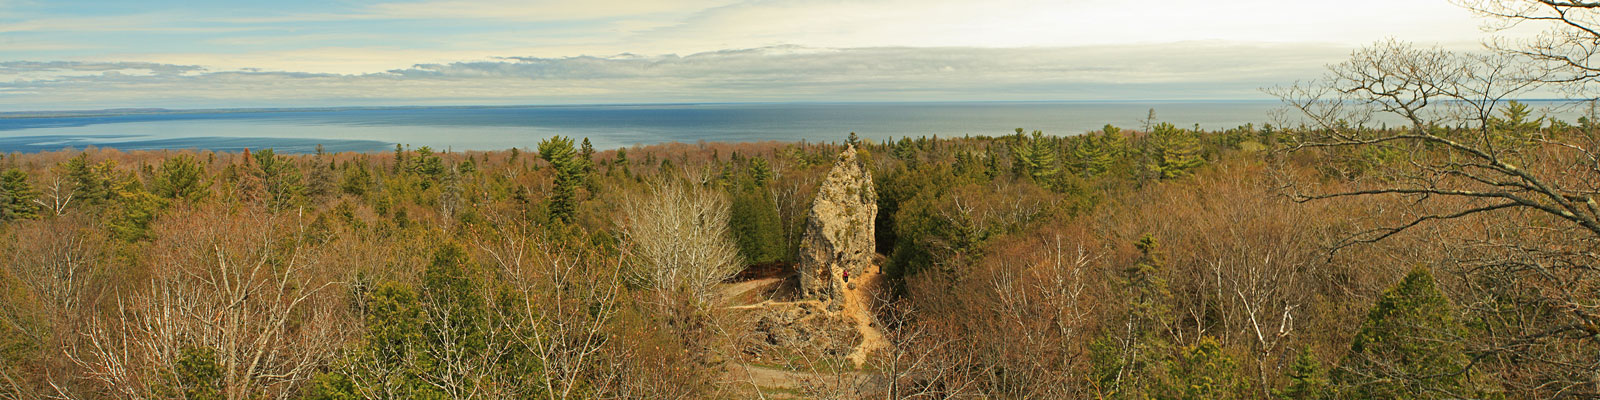 38-lookout-point-mackinac-island